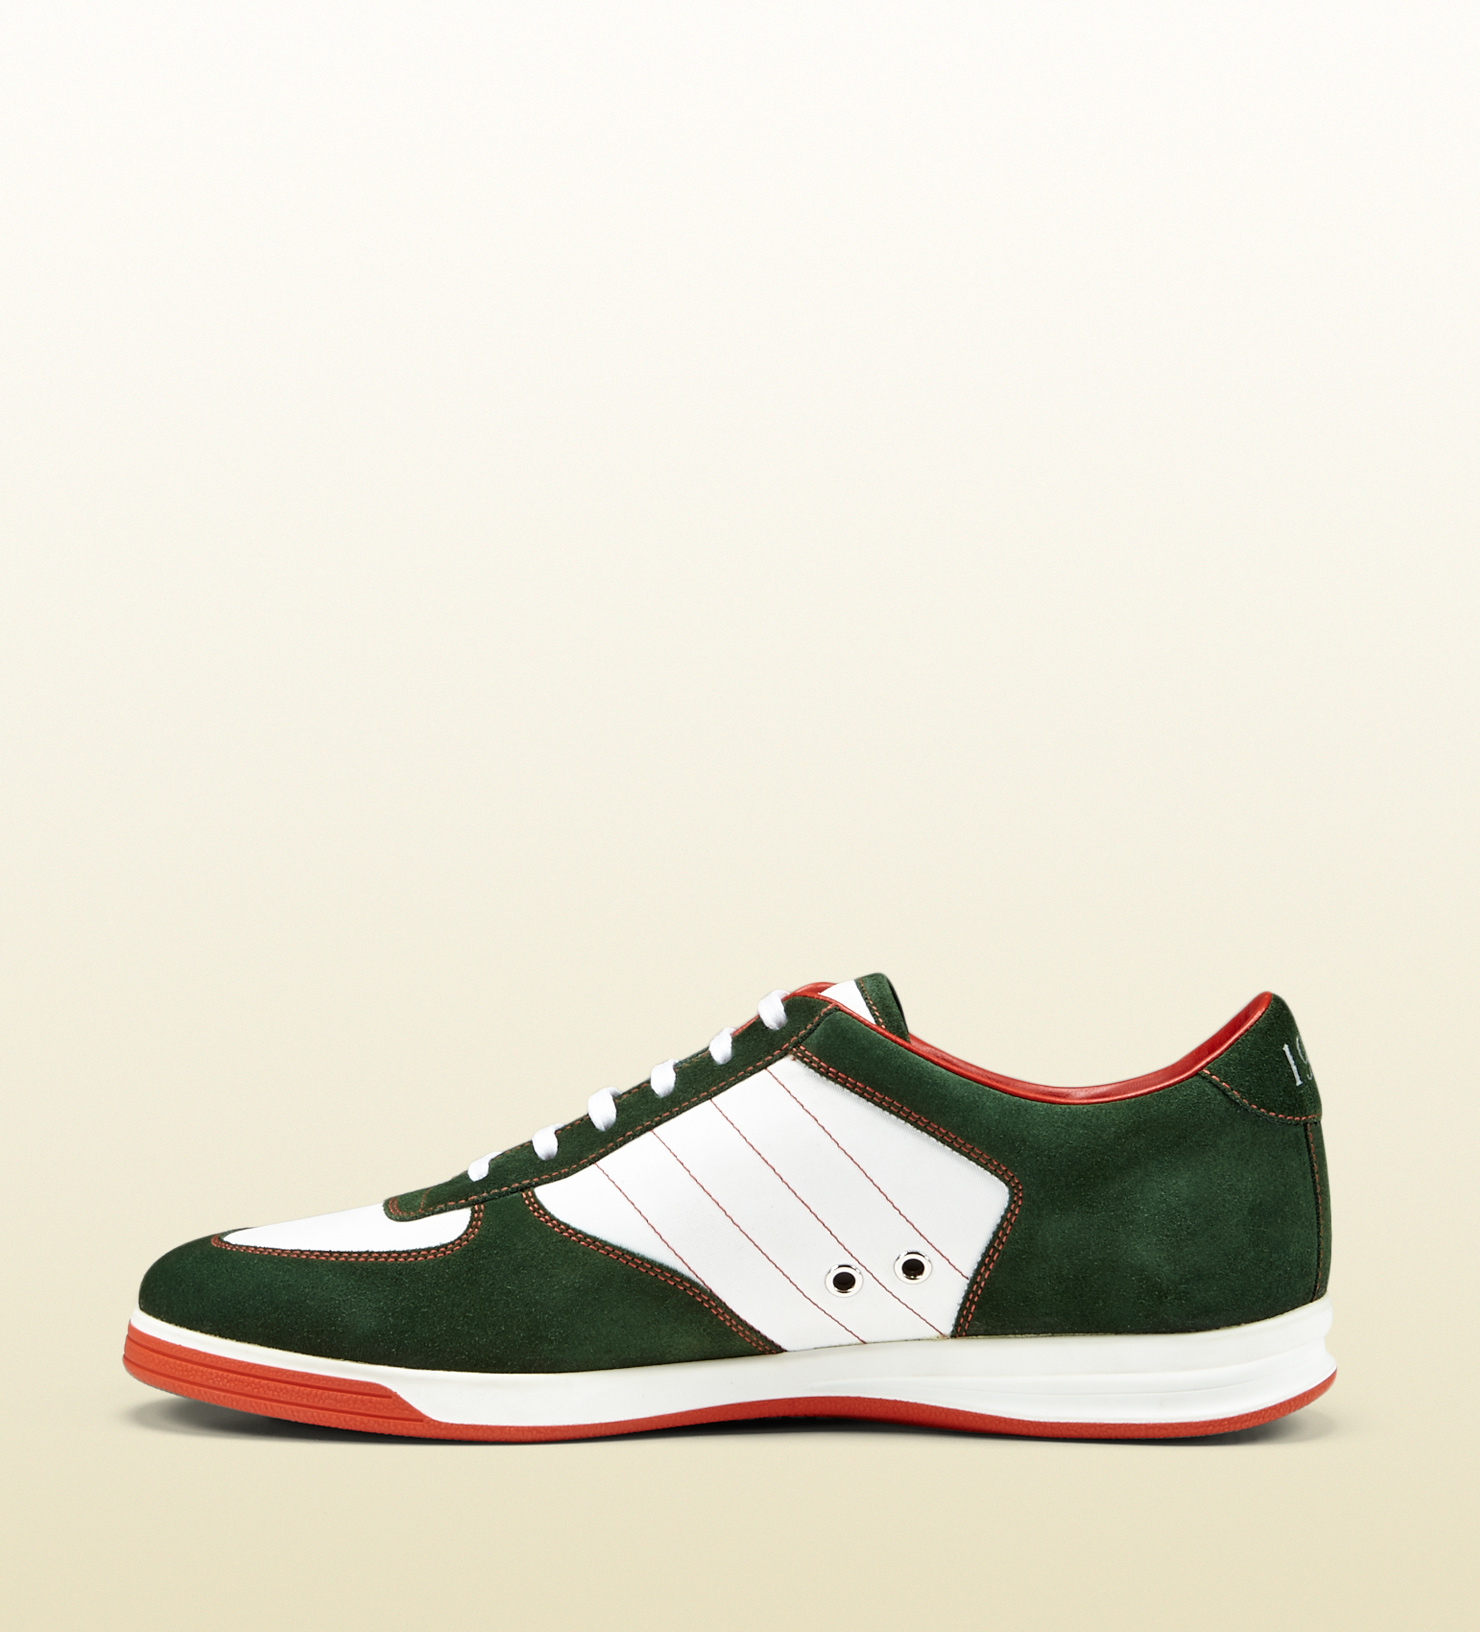 b86a4e0b0 Gucci 1984 Low Top Sneaker In Suede in Green for Men - Lyst